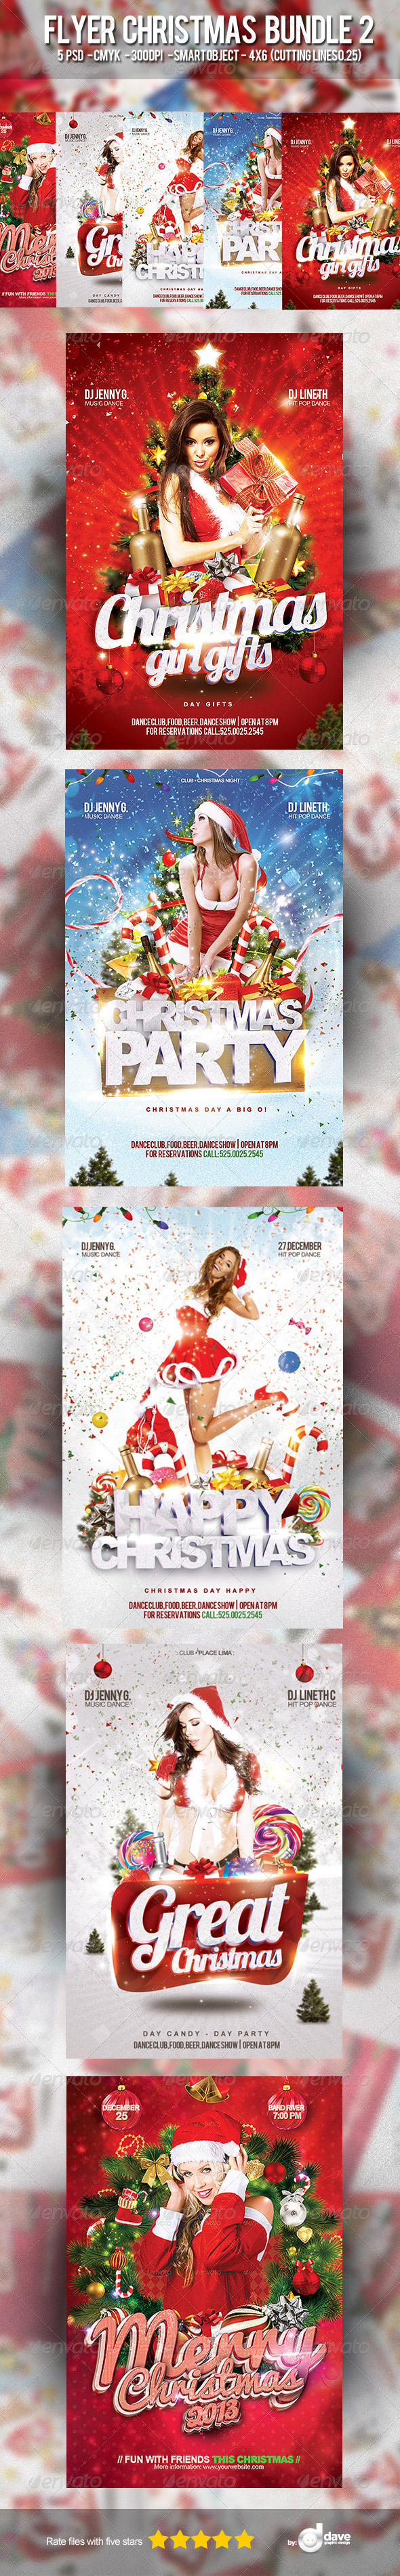 Flyer Christmas Bundle 2 - Clubs & Parties Events